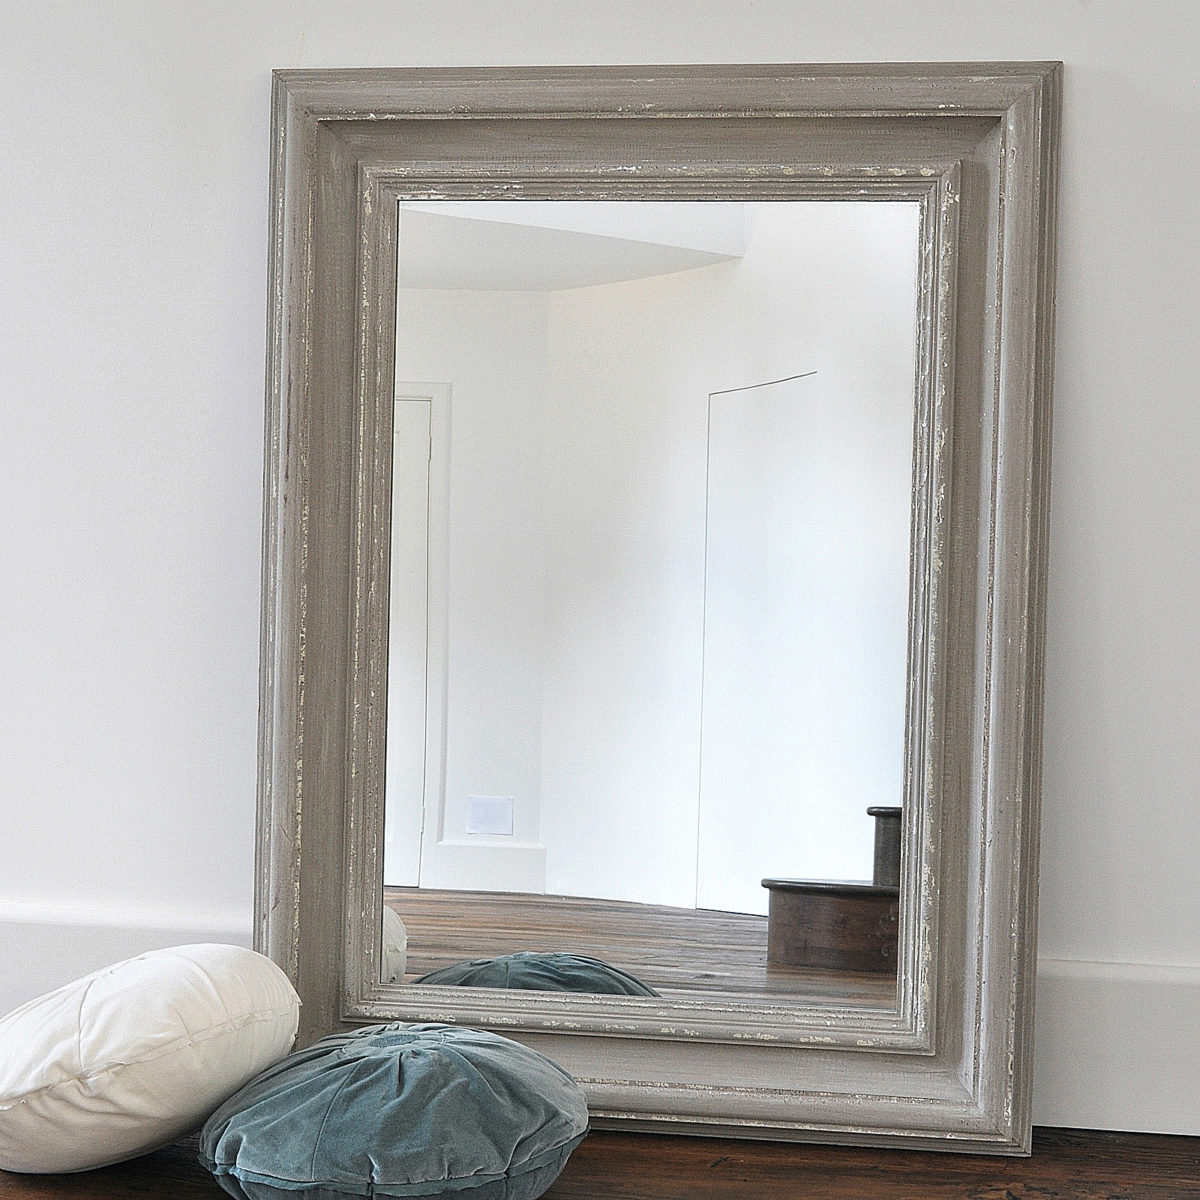 Chunky Antique Grey Wooden Wall Mirror Intended For Well Known Painted Wall Mirrors (View 4 of 20)